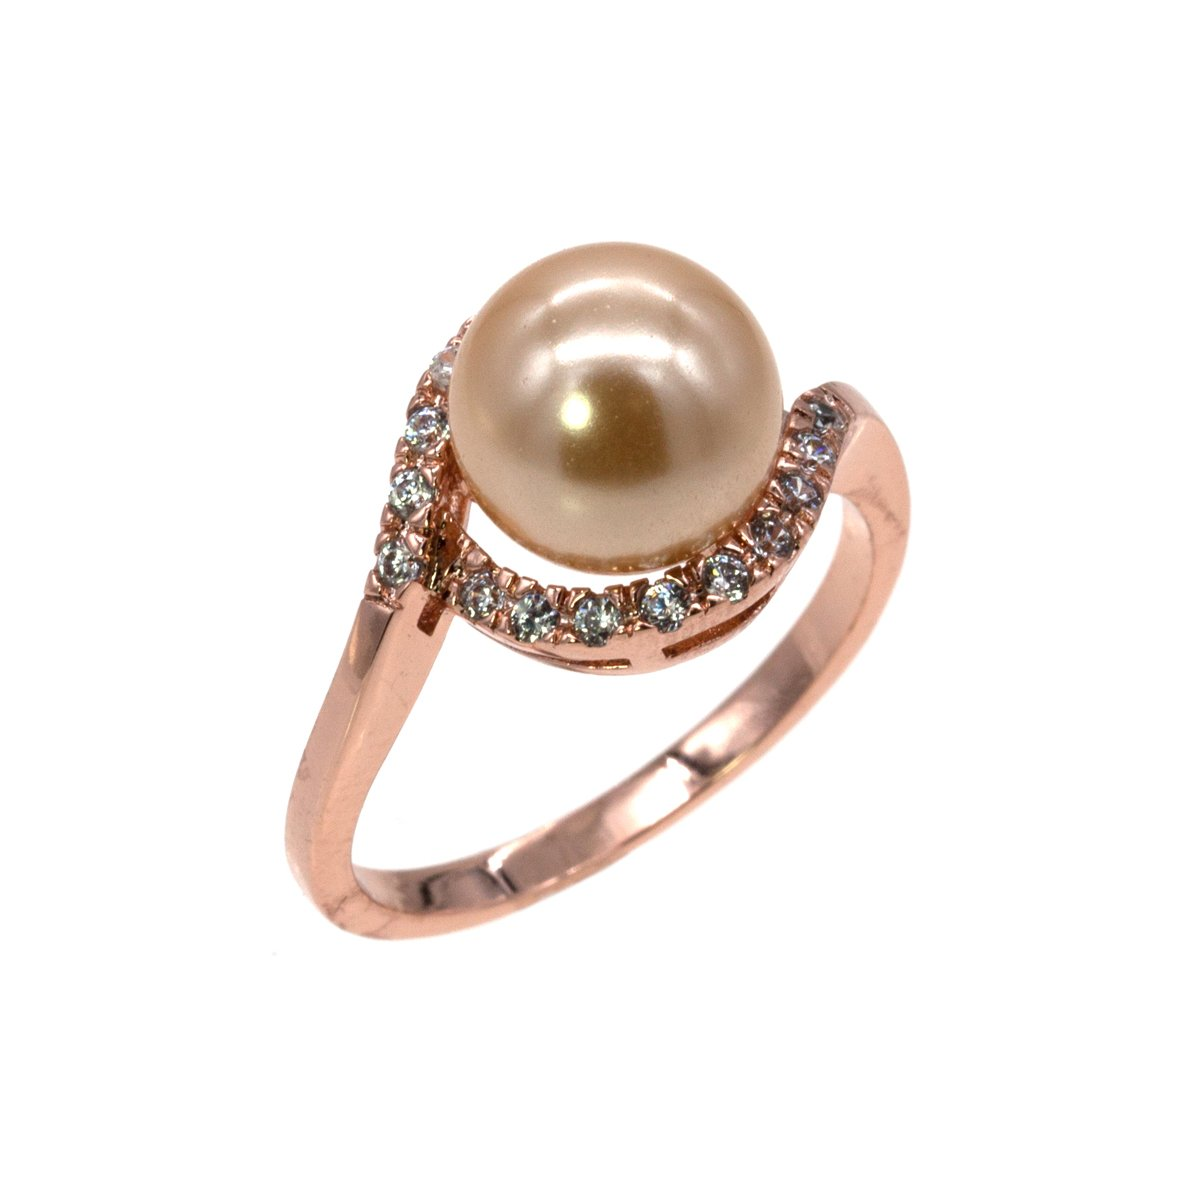 8 mm Pearl Ring AAA CZ Micro Pave Size 5 - 10 Wedding Jewelry (Rose Gold, 7)